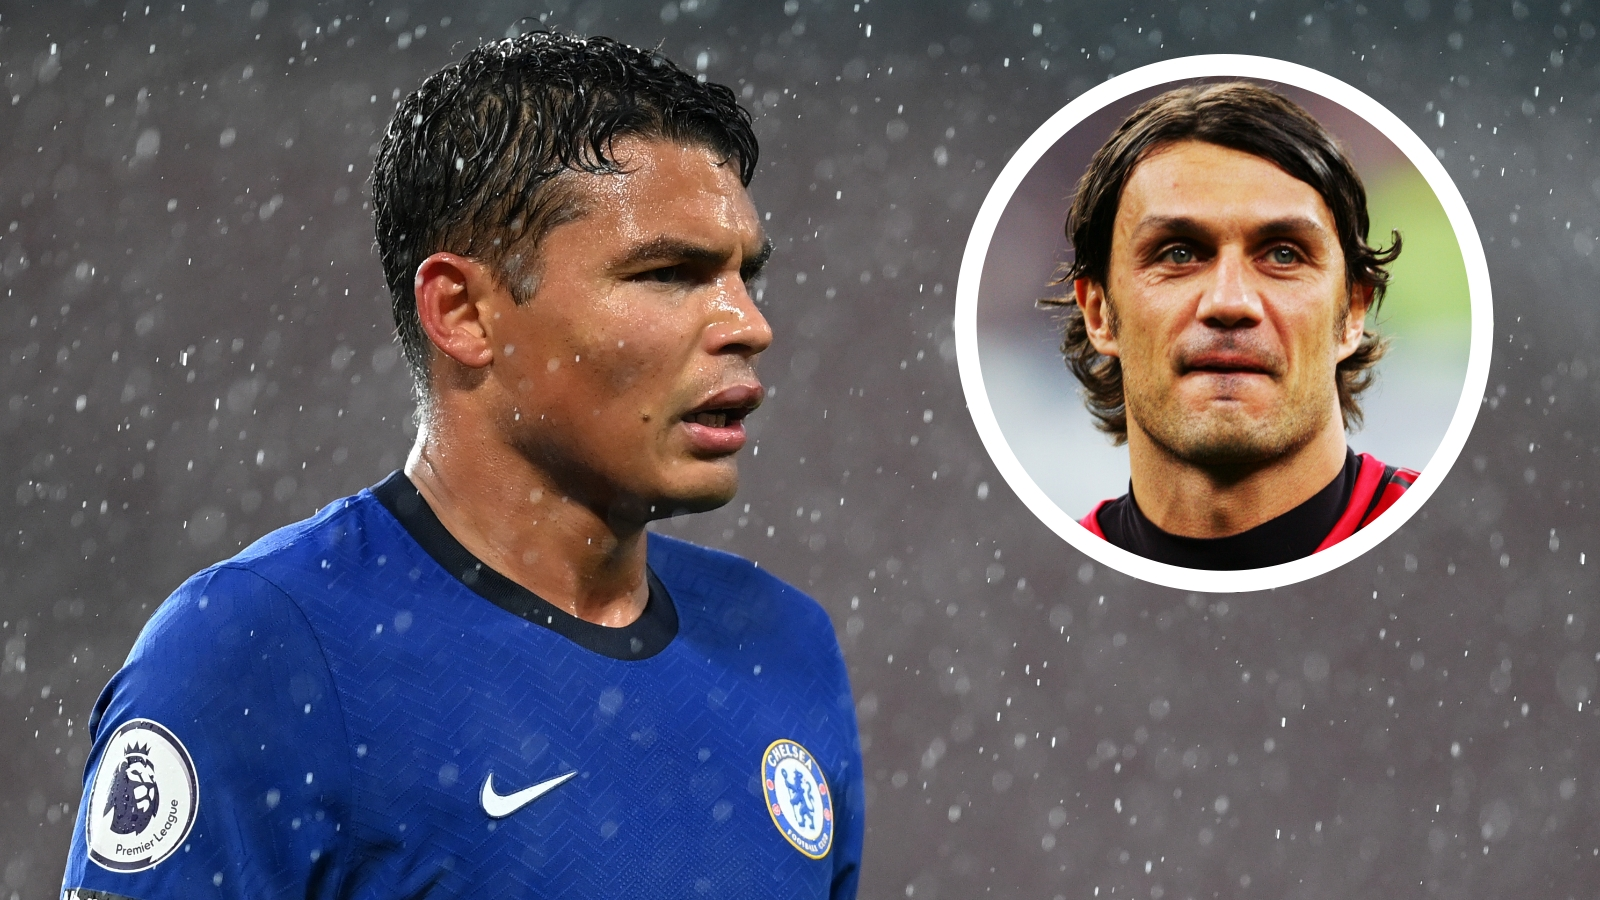 Thiago Silva dreaming of life after Chelsea as defender sets sights on Fluminense and matching AC Milan icon Maldini